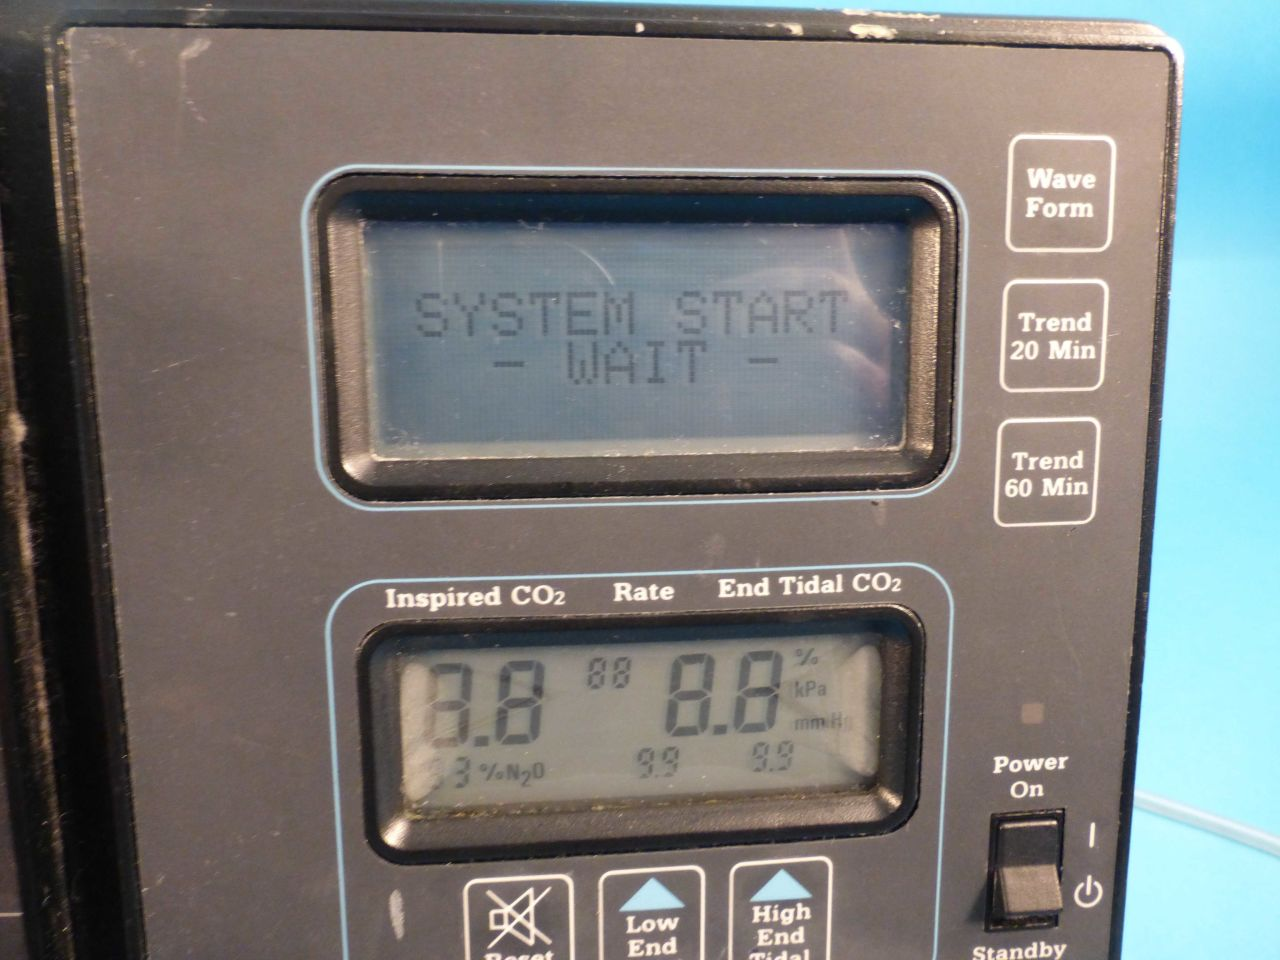 OHMEDA 5200 Co2 Monitor for sale